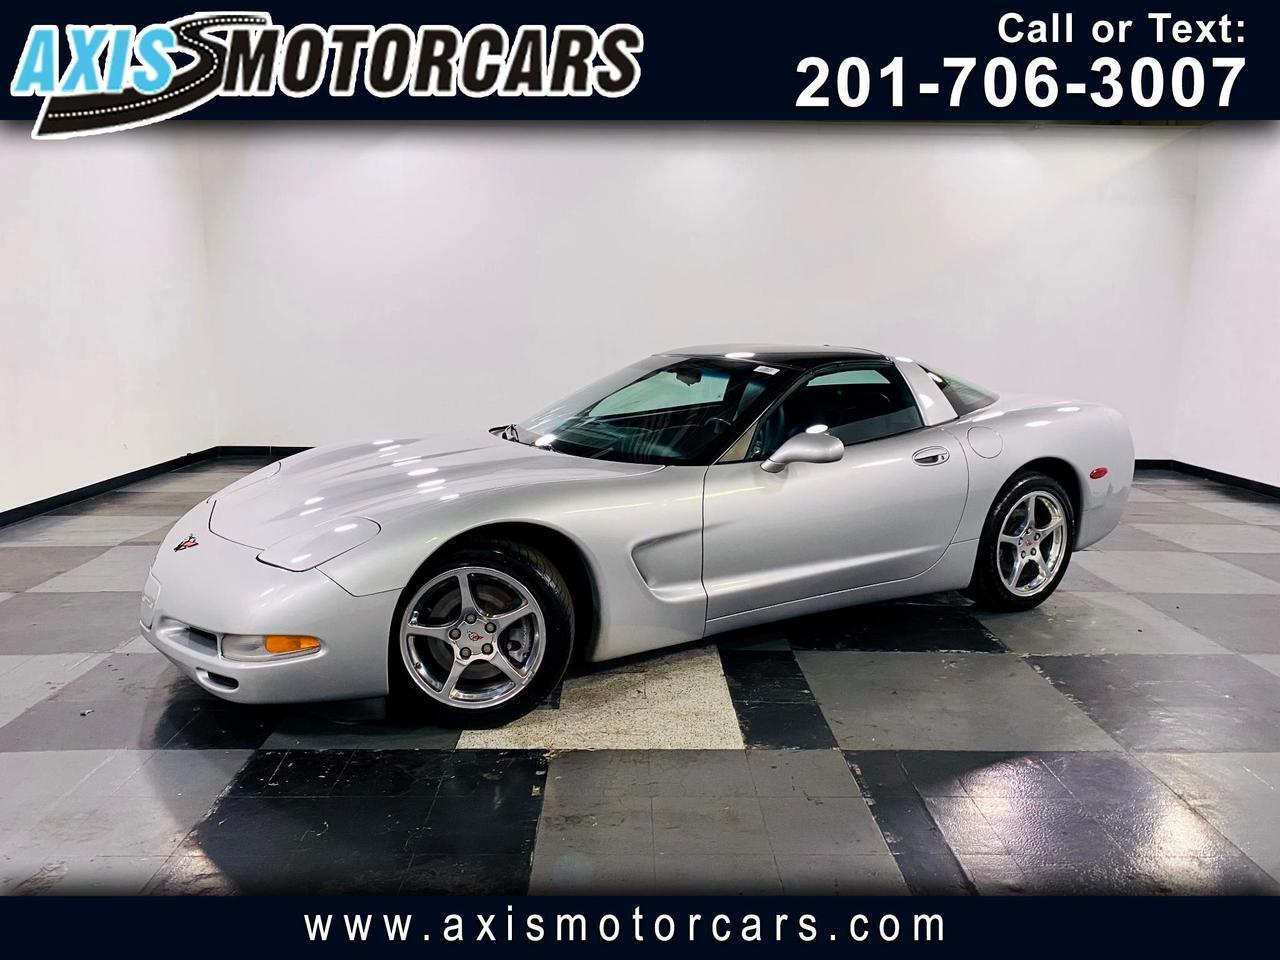 2000 Chevrolet Corvette w/Targa Roof Bose Sound System Jersey City NJ